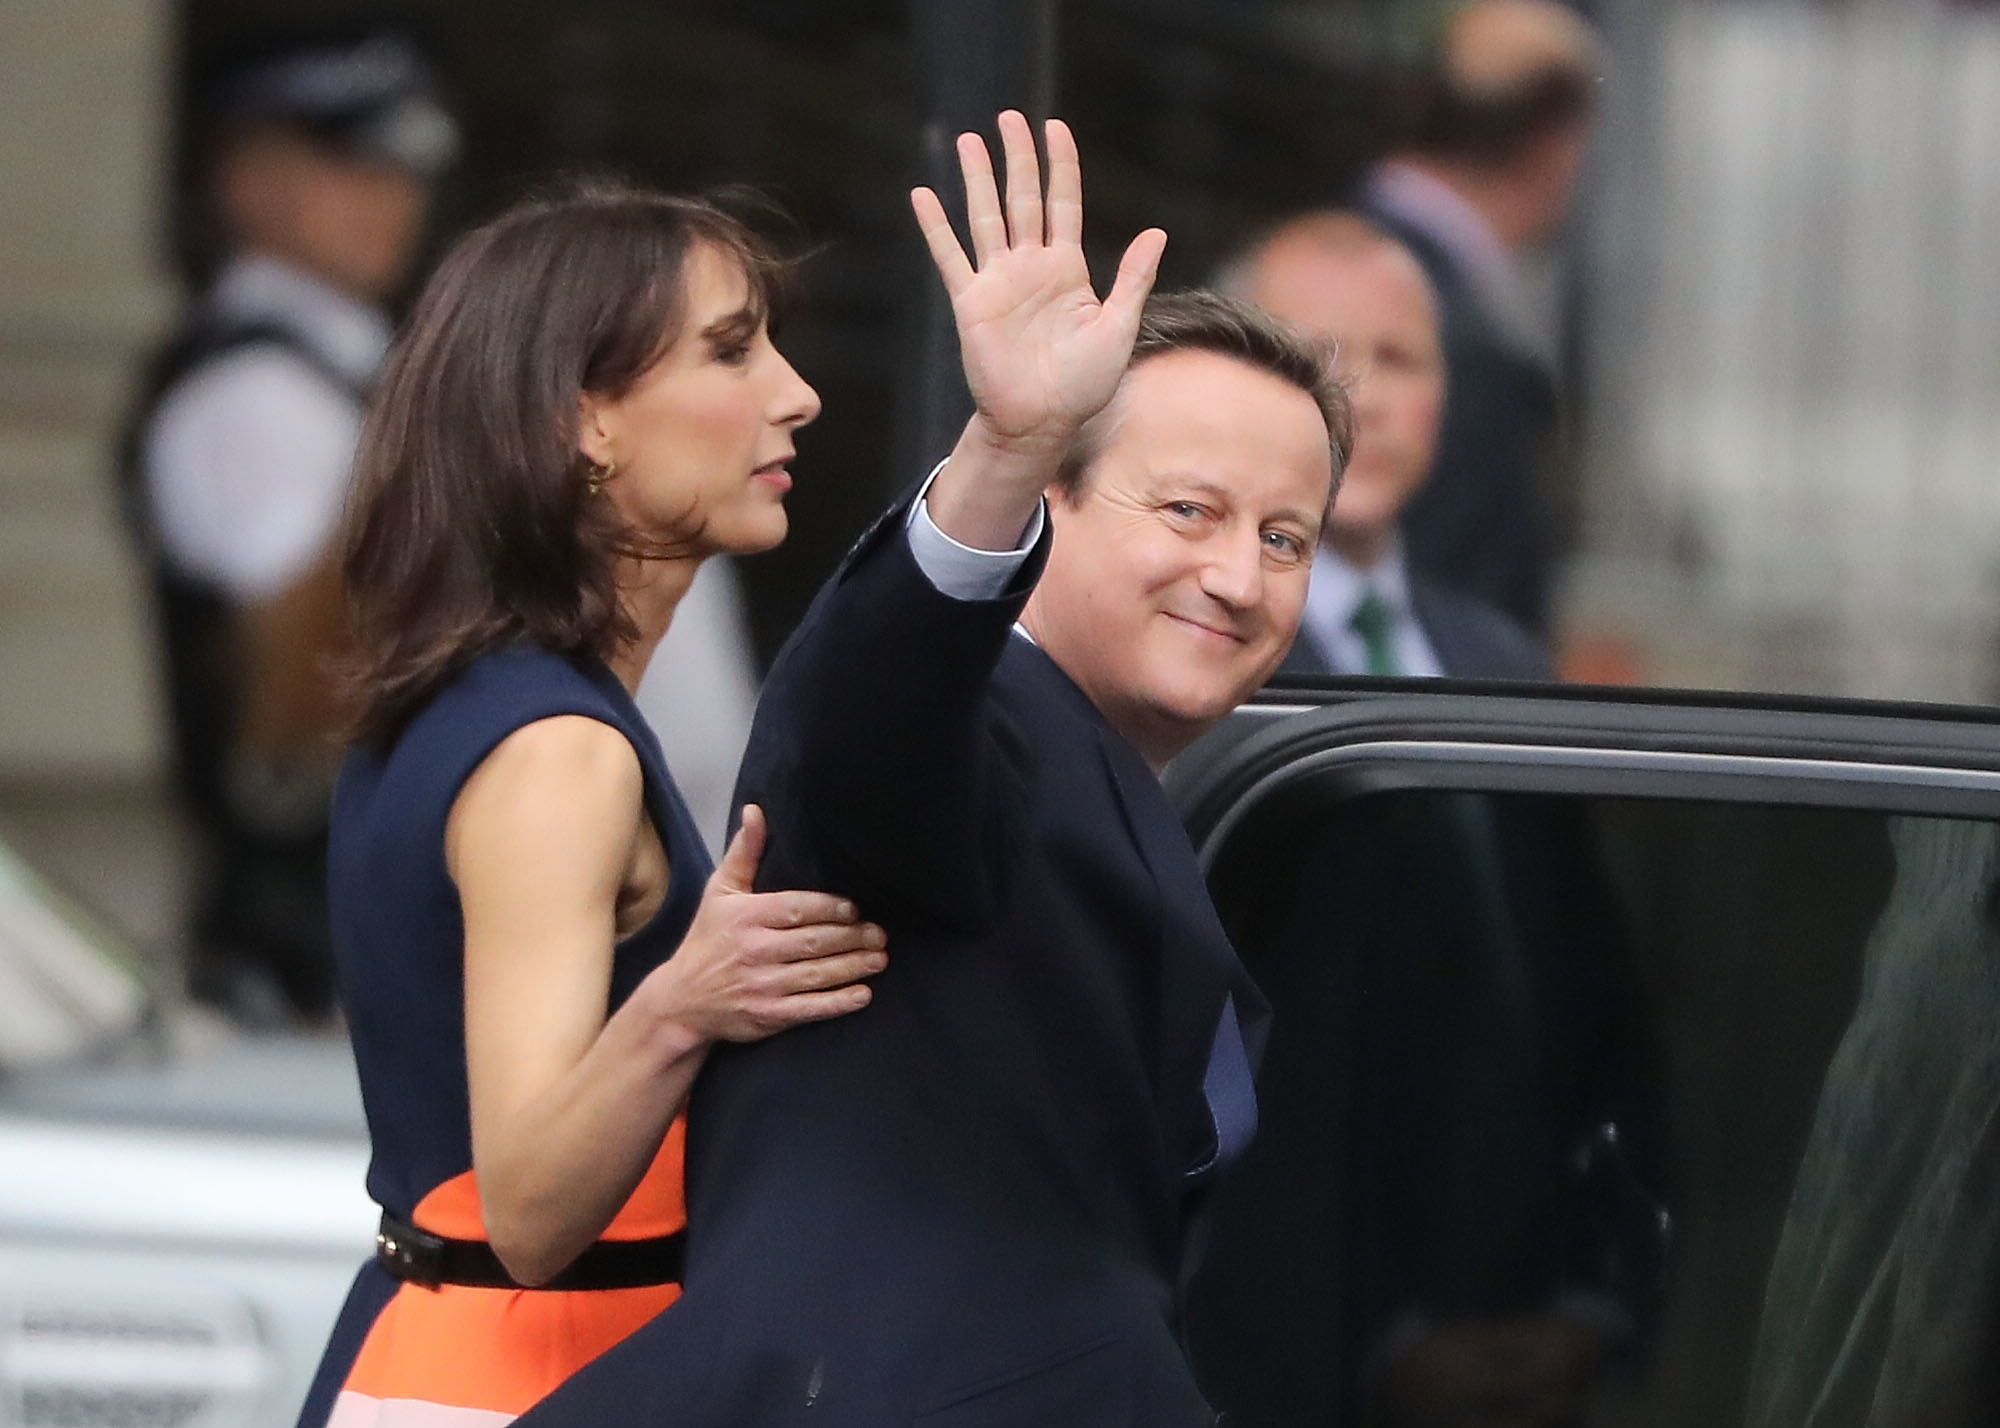 David Cameron and his wife Samantha leave Number 10 Downing Street after his resignation as Prime Minister earlier this year.